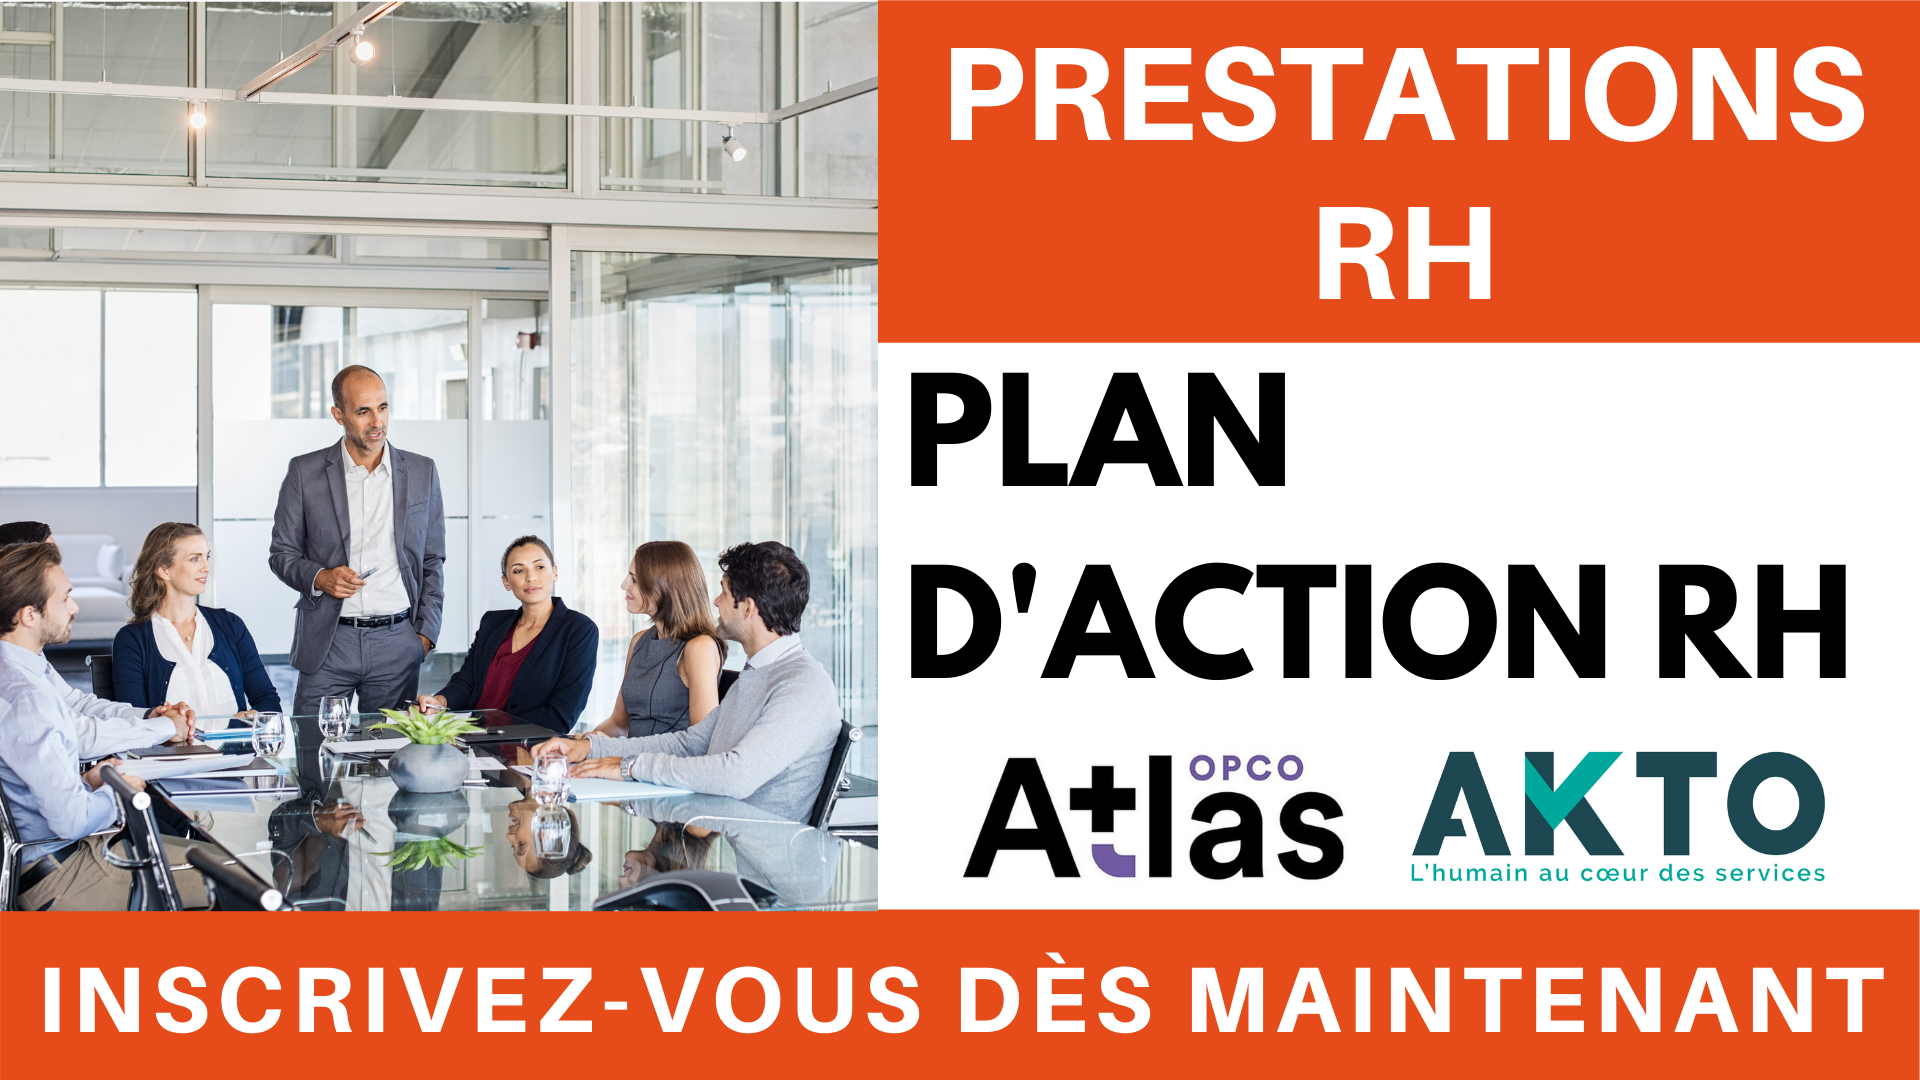 Prestations RH - Plan d'action RH AKTO _ ATLAS (1)